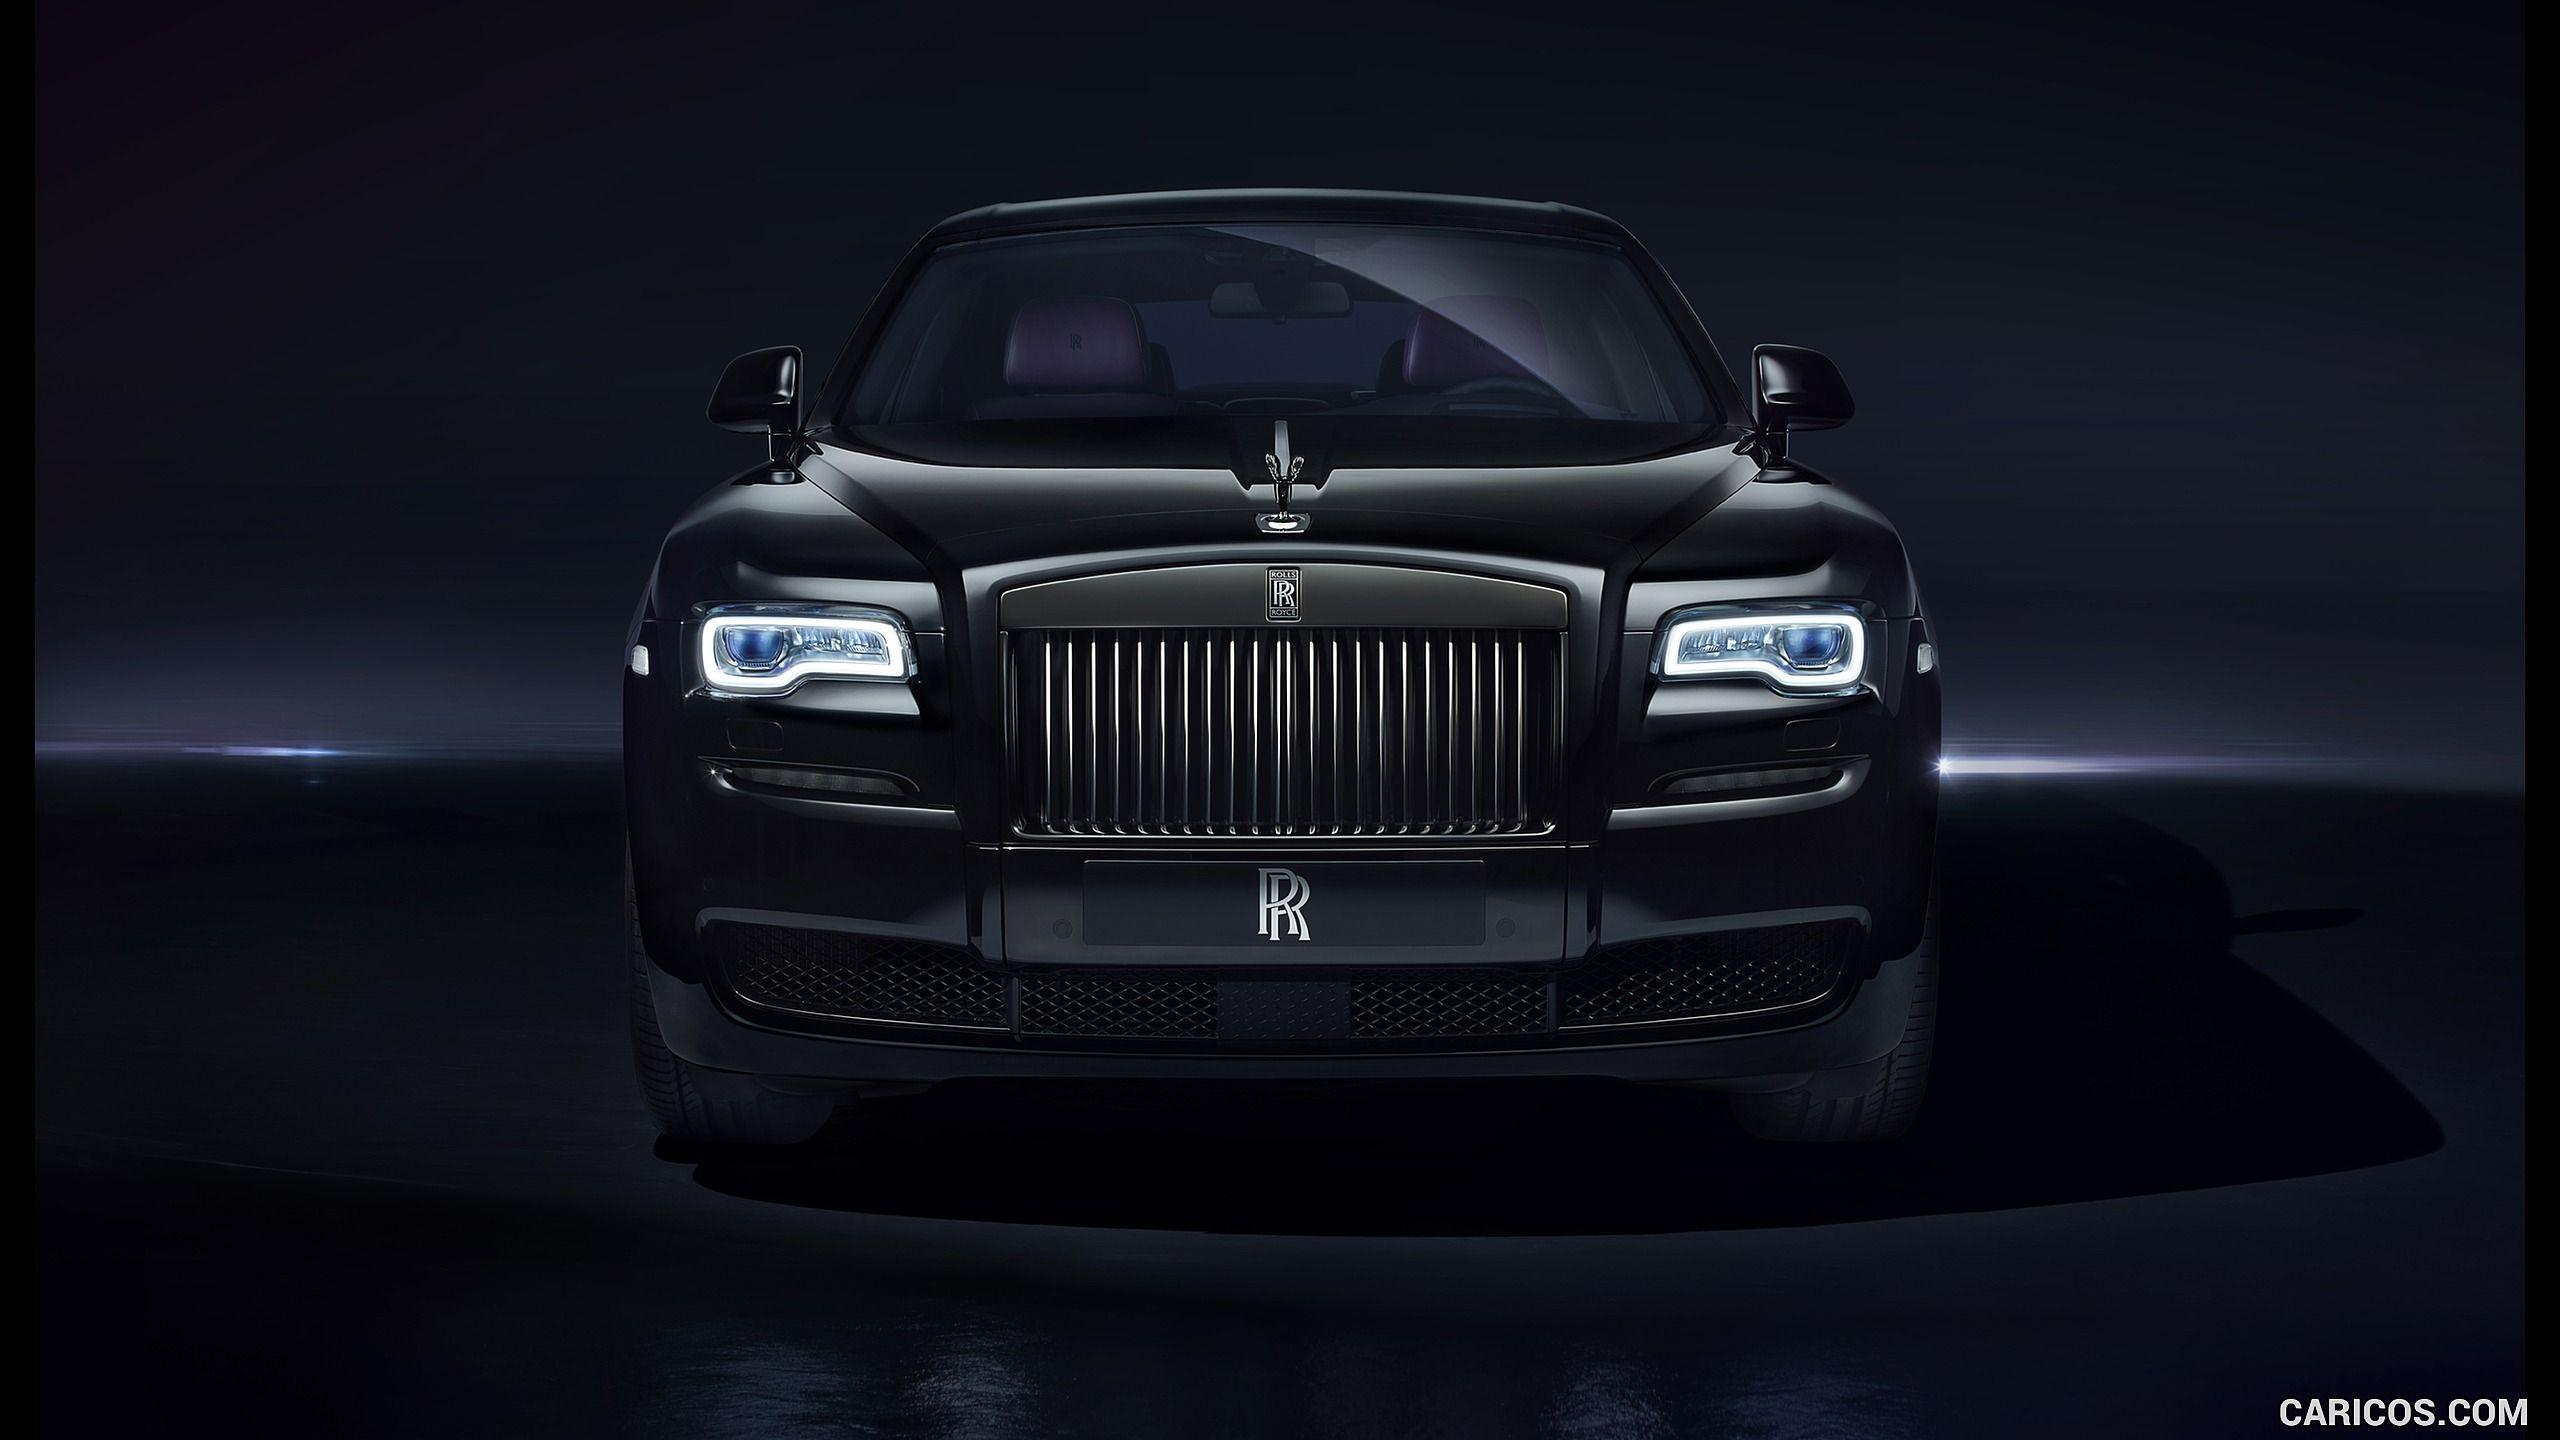 Rolls Royce Phantom Wallpapers HD Photos, Wallpapers and other Image